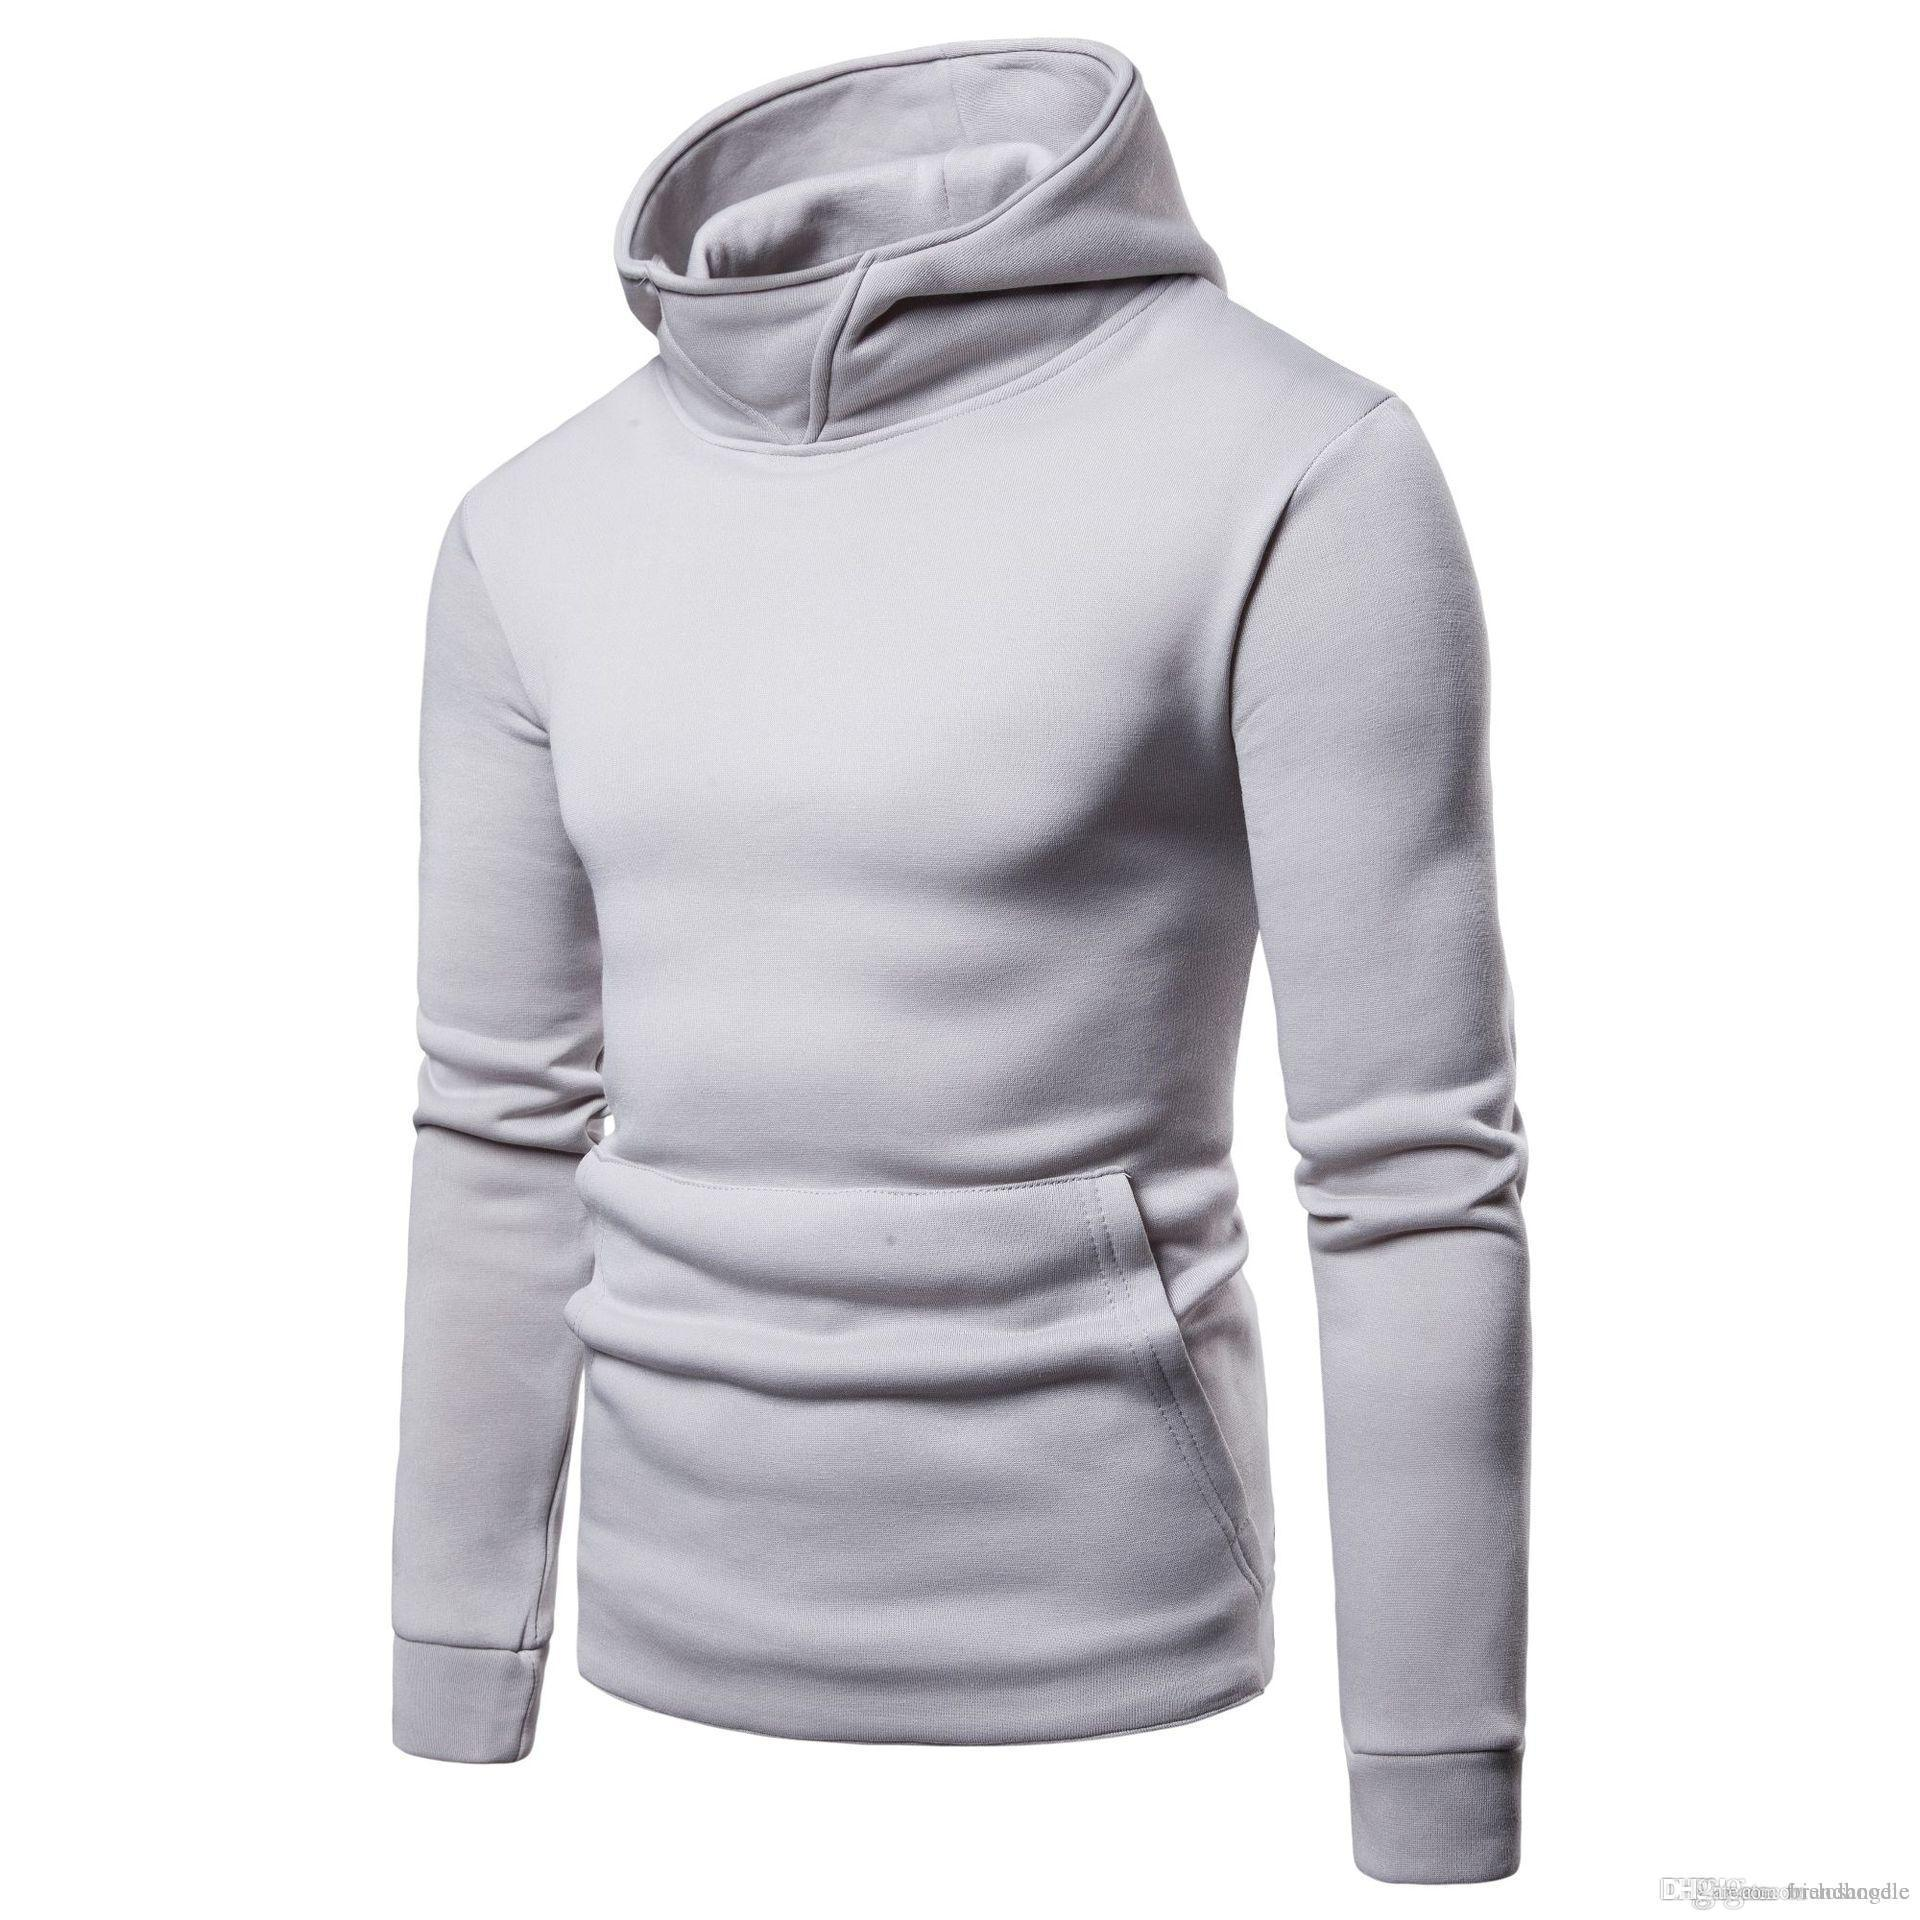 Mens Solid Hoodies Spring Autumn Male Casual Sweatshirts Tops Long Sleeved Clothes for Hommes